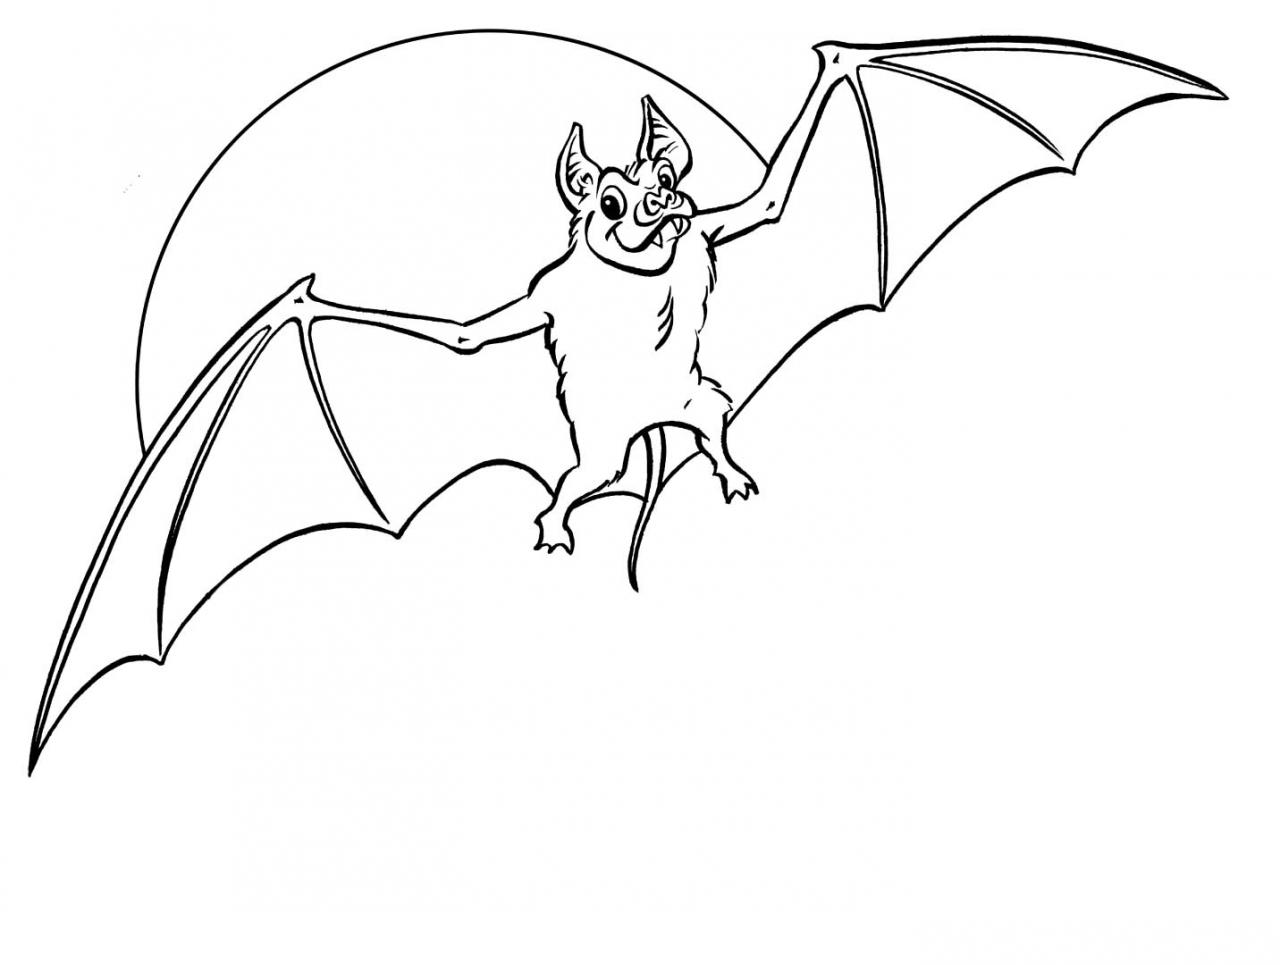 1280x965 Halloween Bat Coloring Pages Coloring Page For Kids Kids Coloring